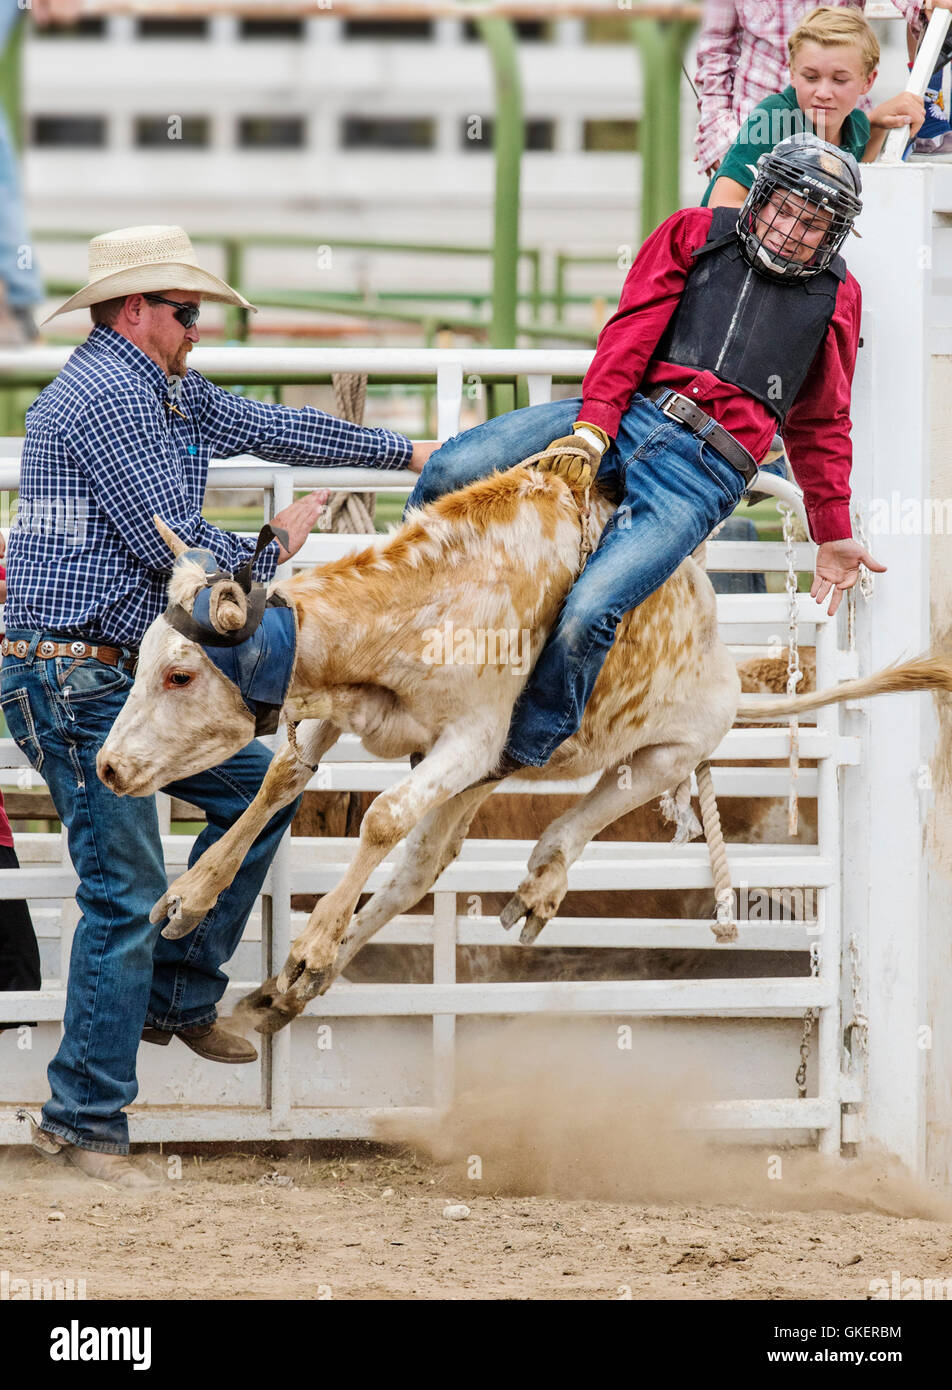 Young cowboy riding a small bull in the Junior Steer Riding competition, Chaffee County Fair & Rodeo, Salida, - Stock Image